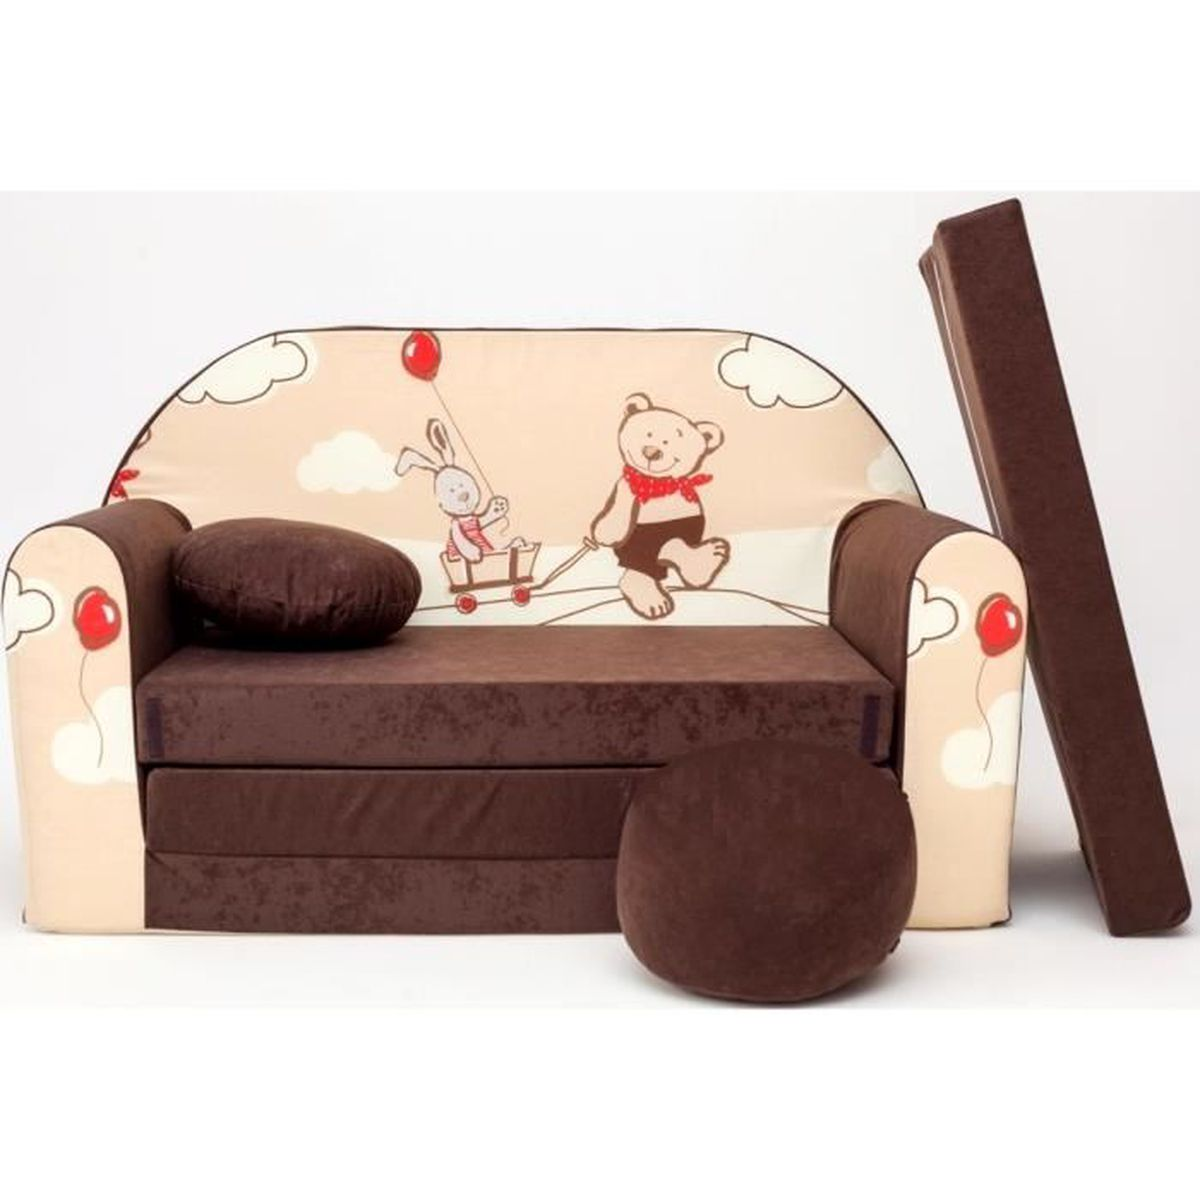 canape sofa enfant 2 places convertible marron ours et lapin achat vente fauteuil canap. Black Bedroom Furniture Sets. Home Design Ideas